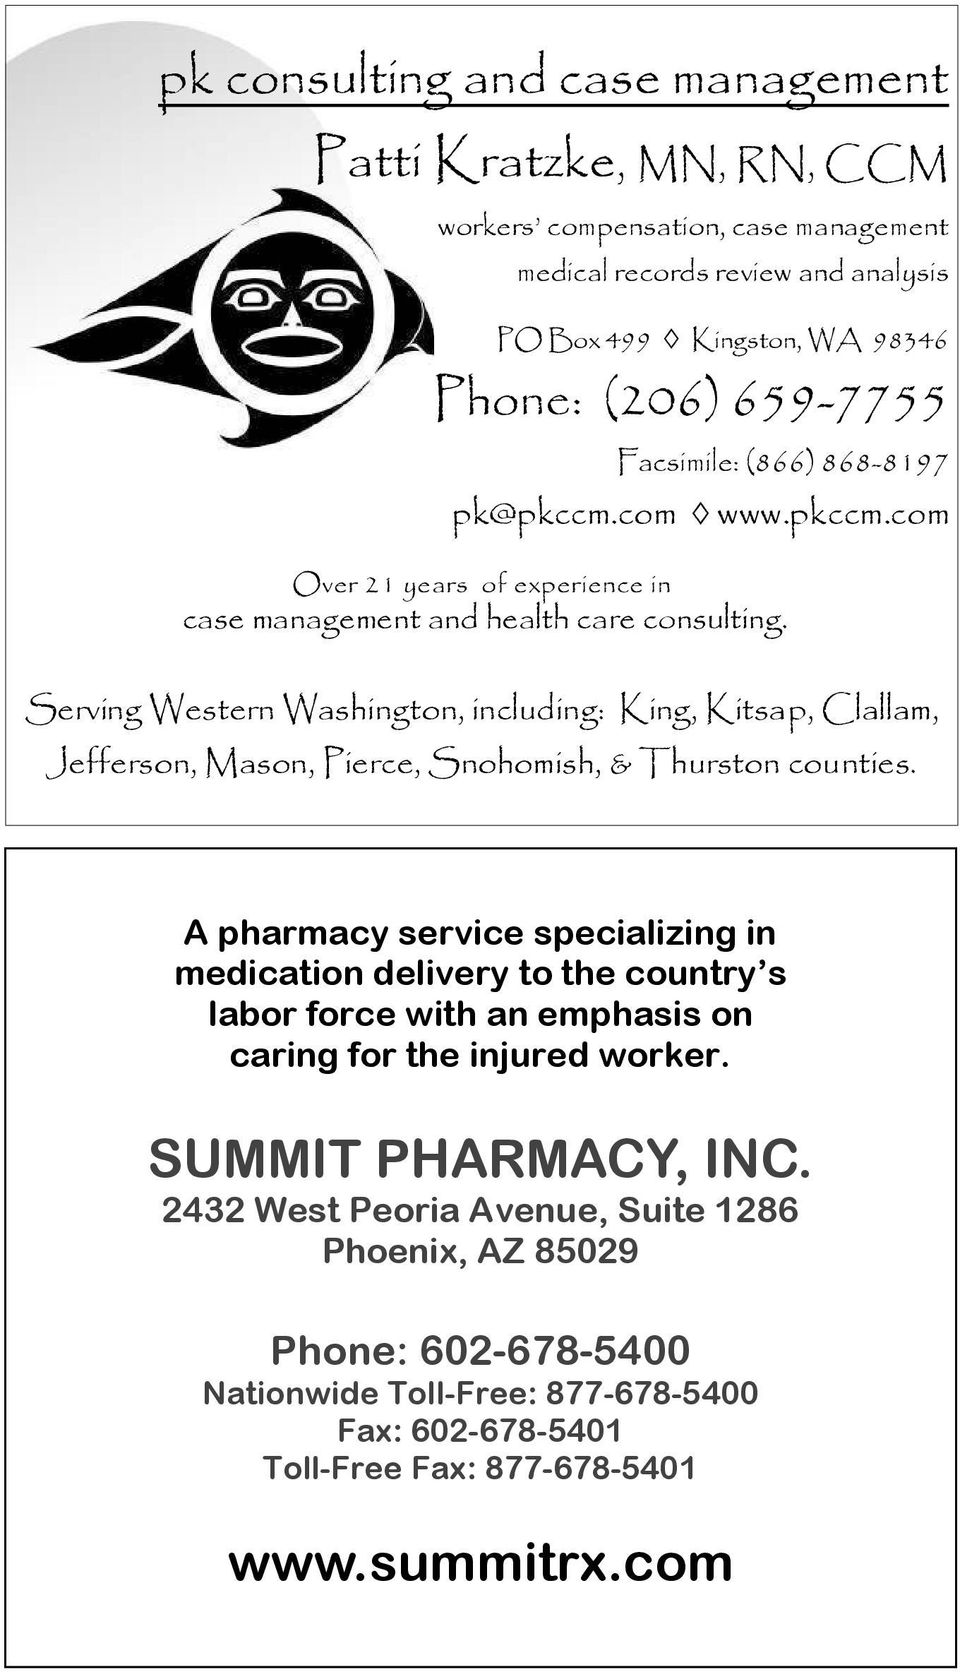 Serving Western Washington, including: King, Kitsap, Clallam, Jefferson, Mason, Pierce, Snohomish, & Thurston counties.